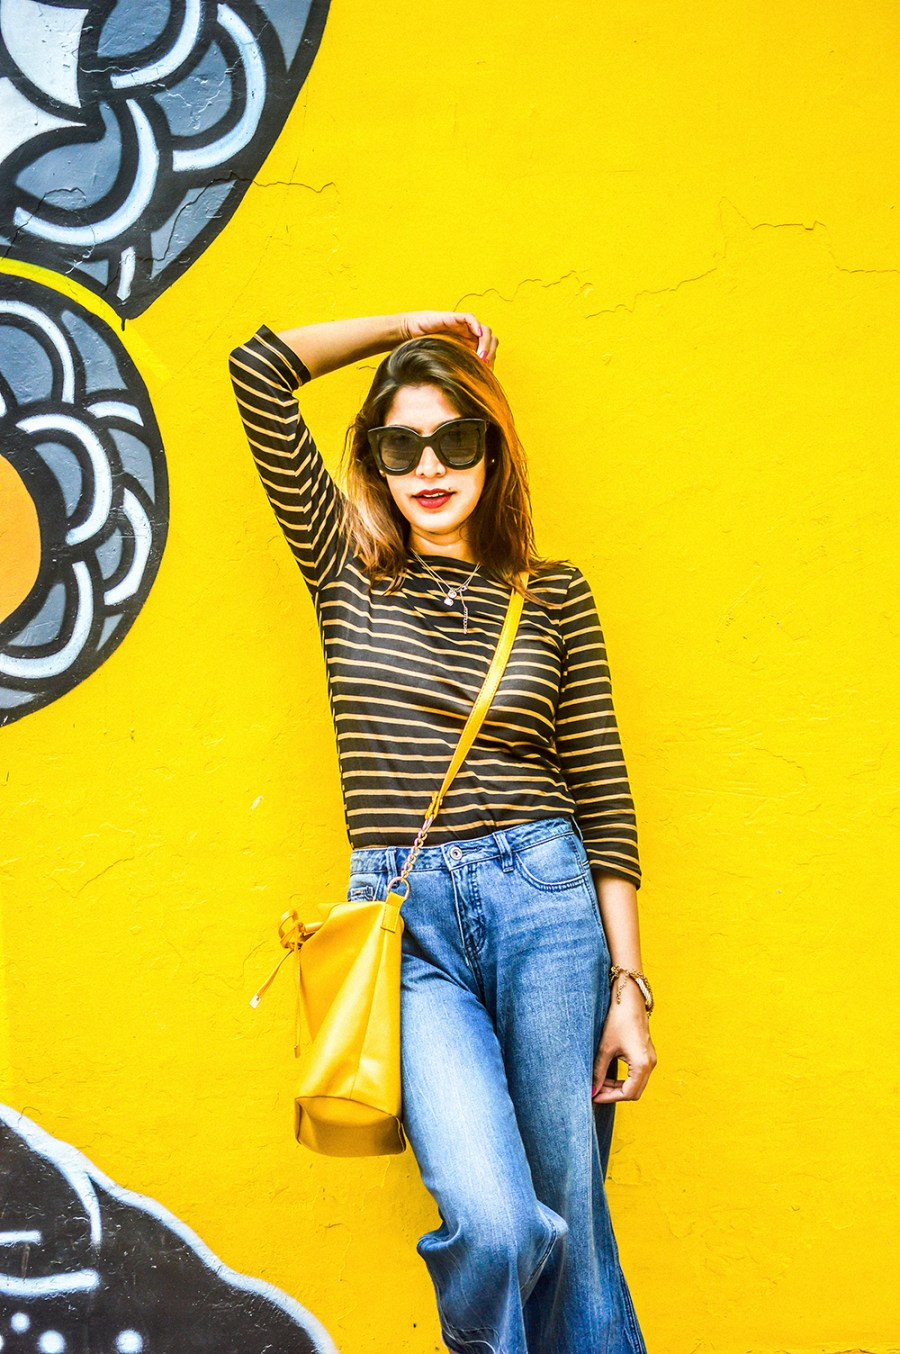 Denim, Culottes, Yellow Bag, Delhi Trip, Striped Top, Fashion Photography, Motivation-1